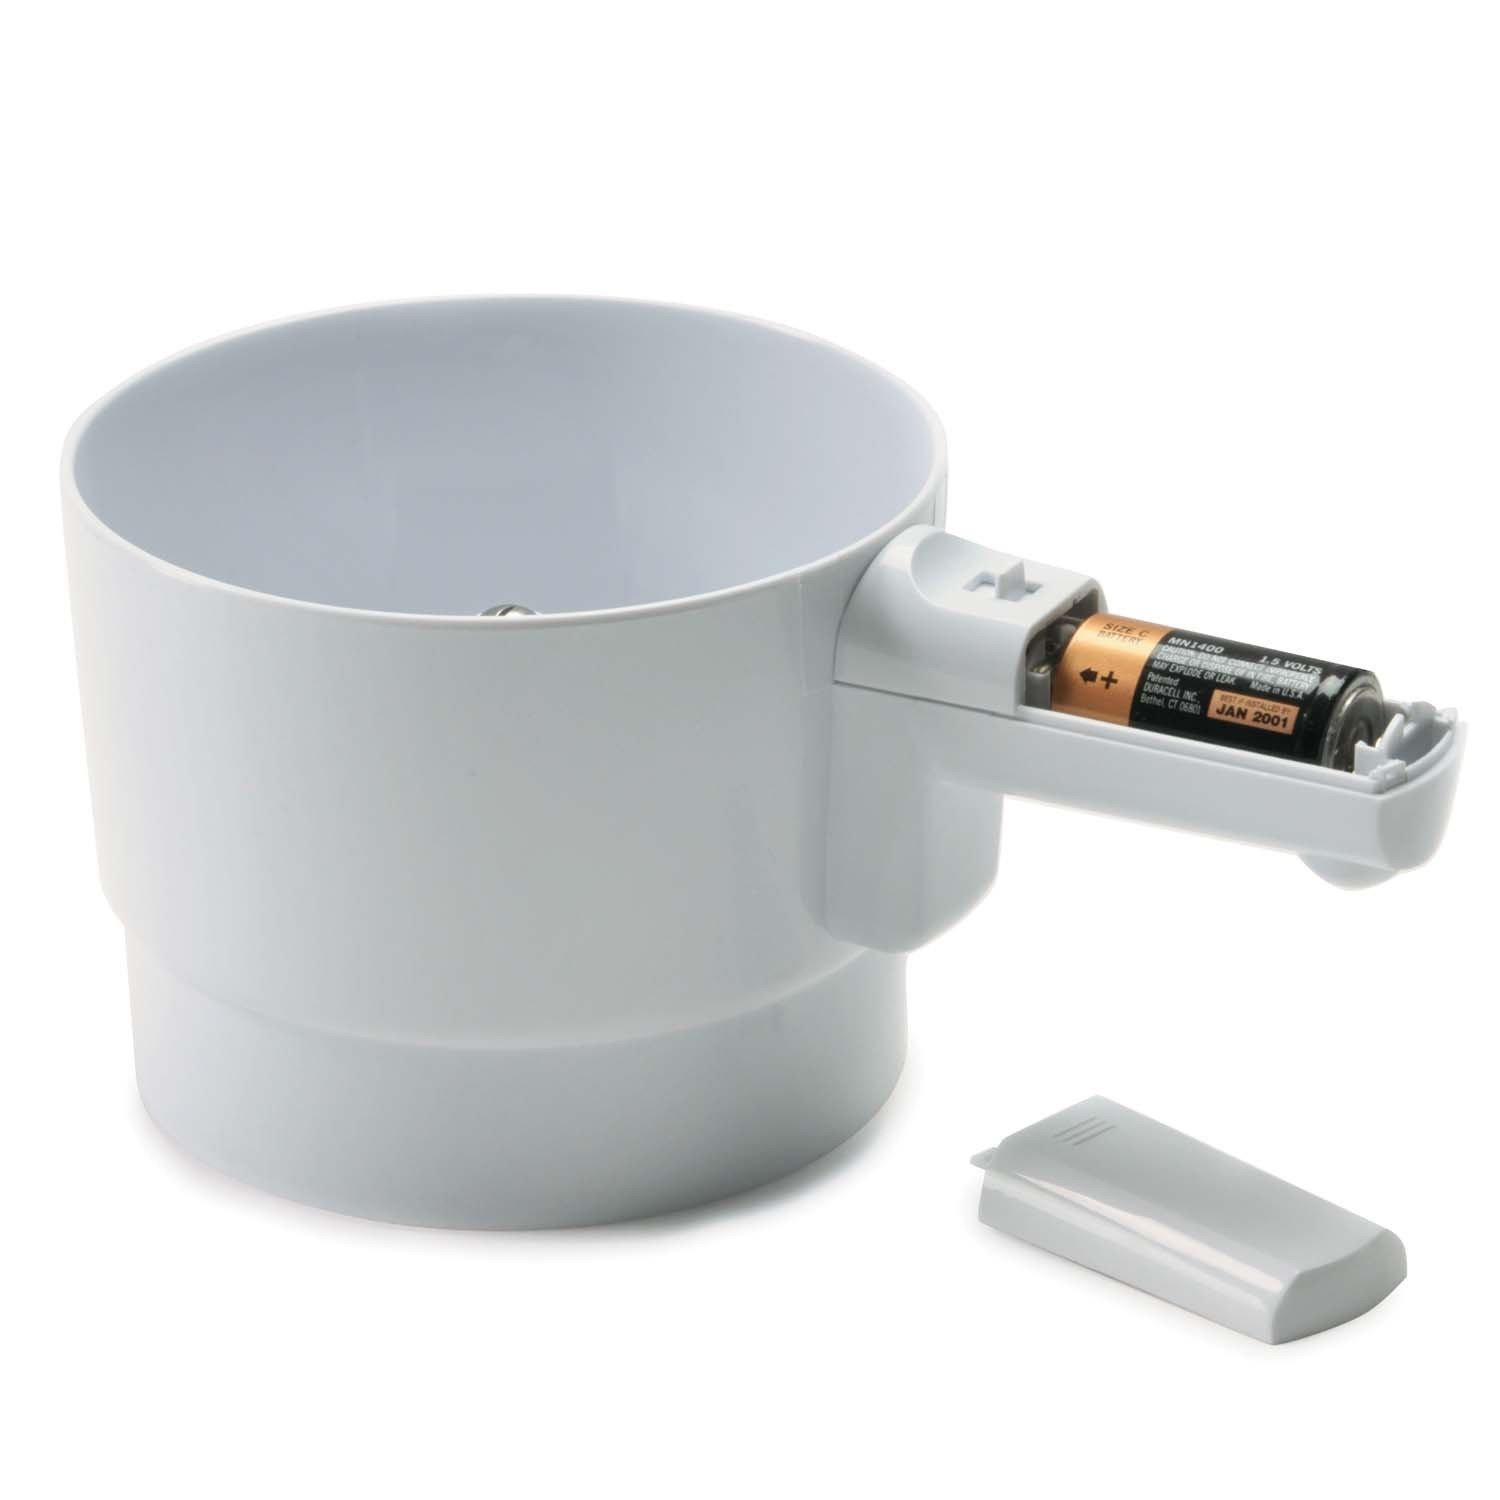 Battery Operated Flour Sifter by